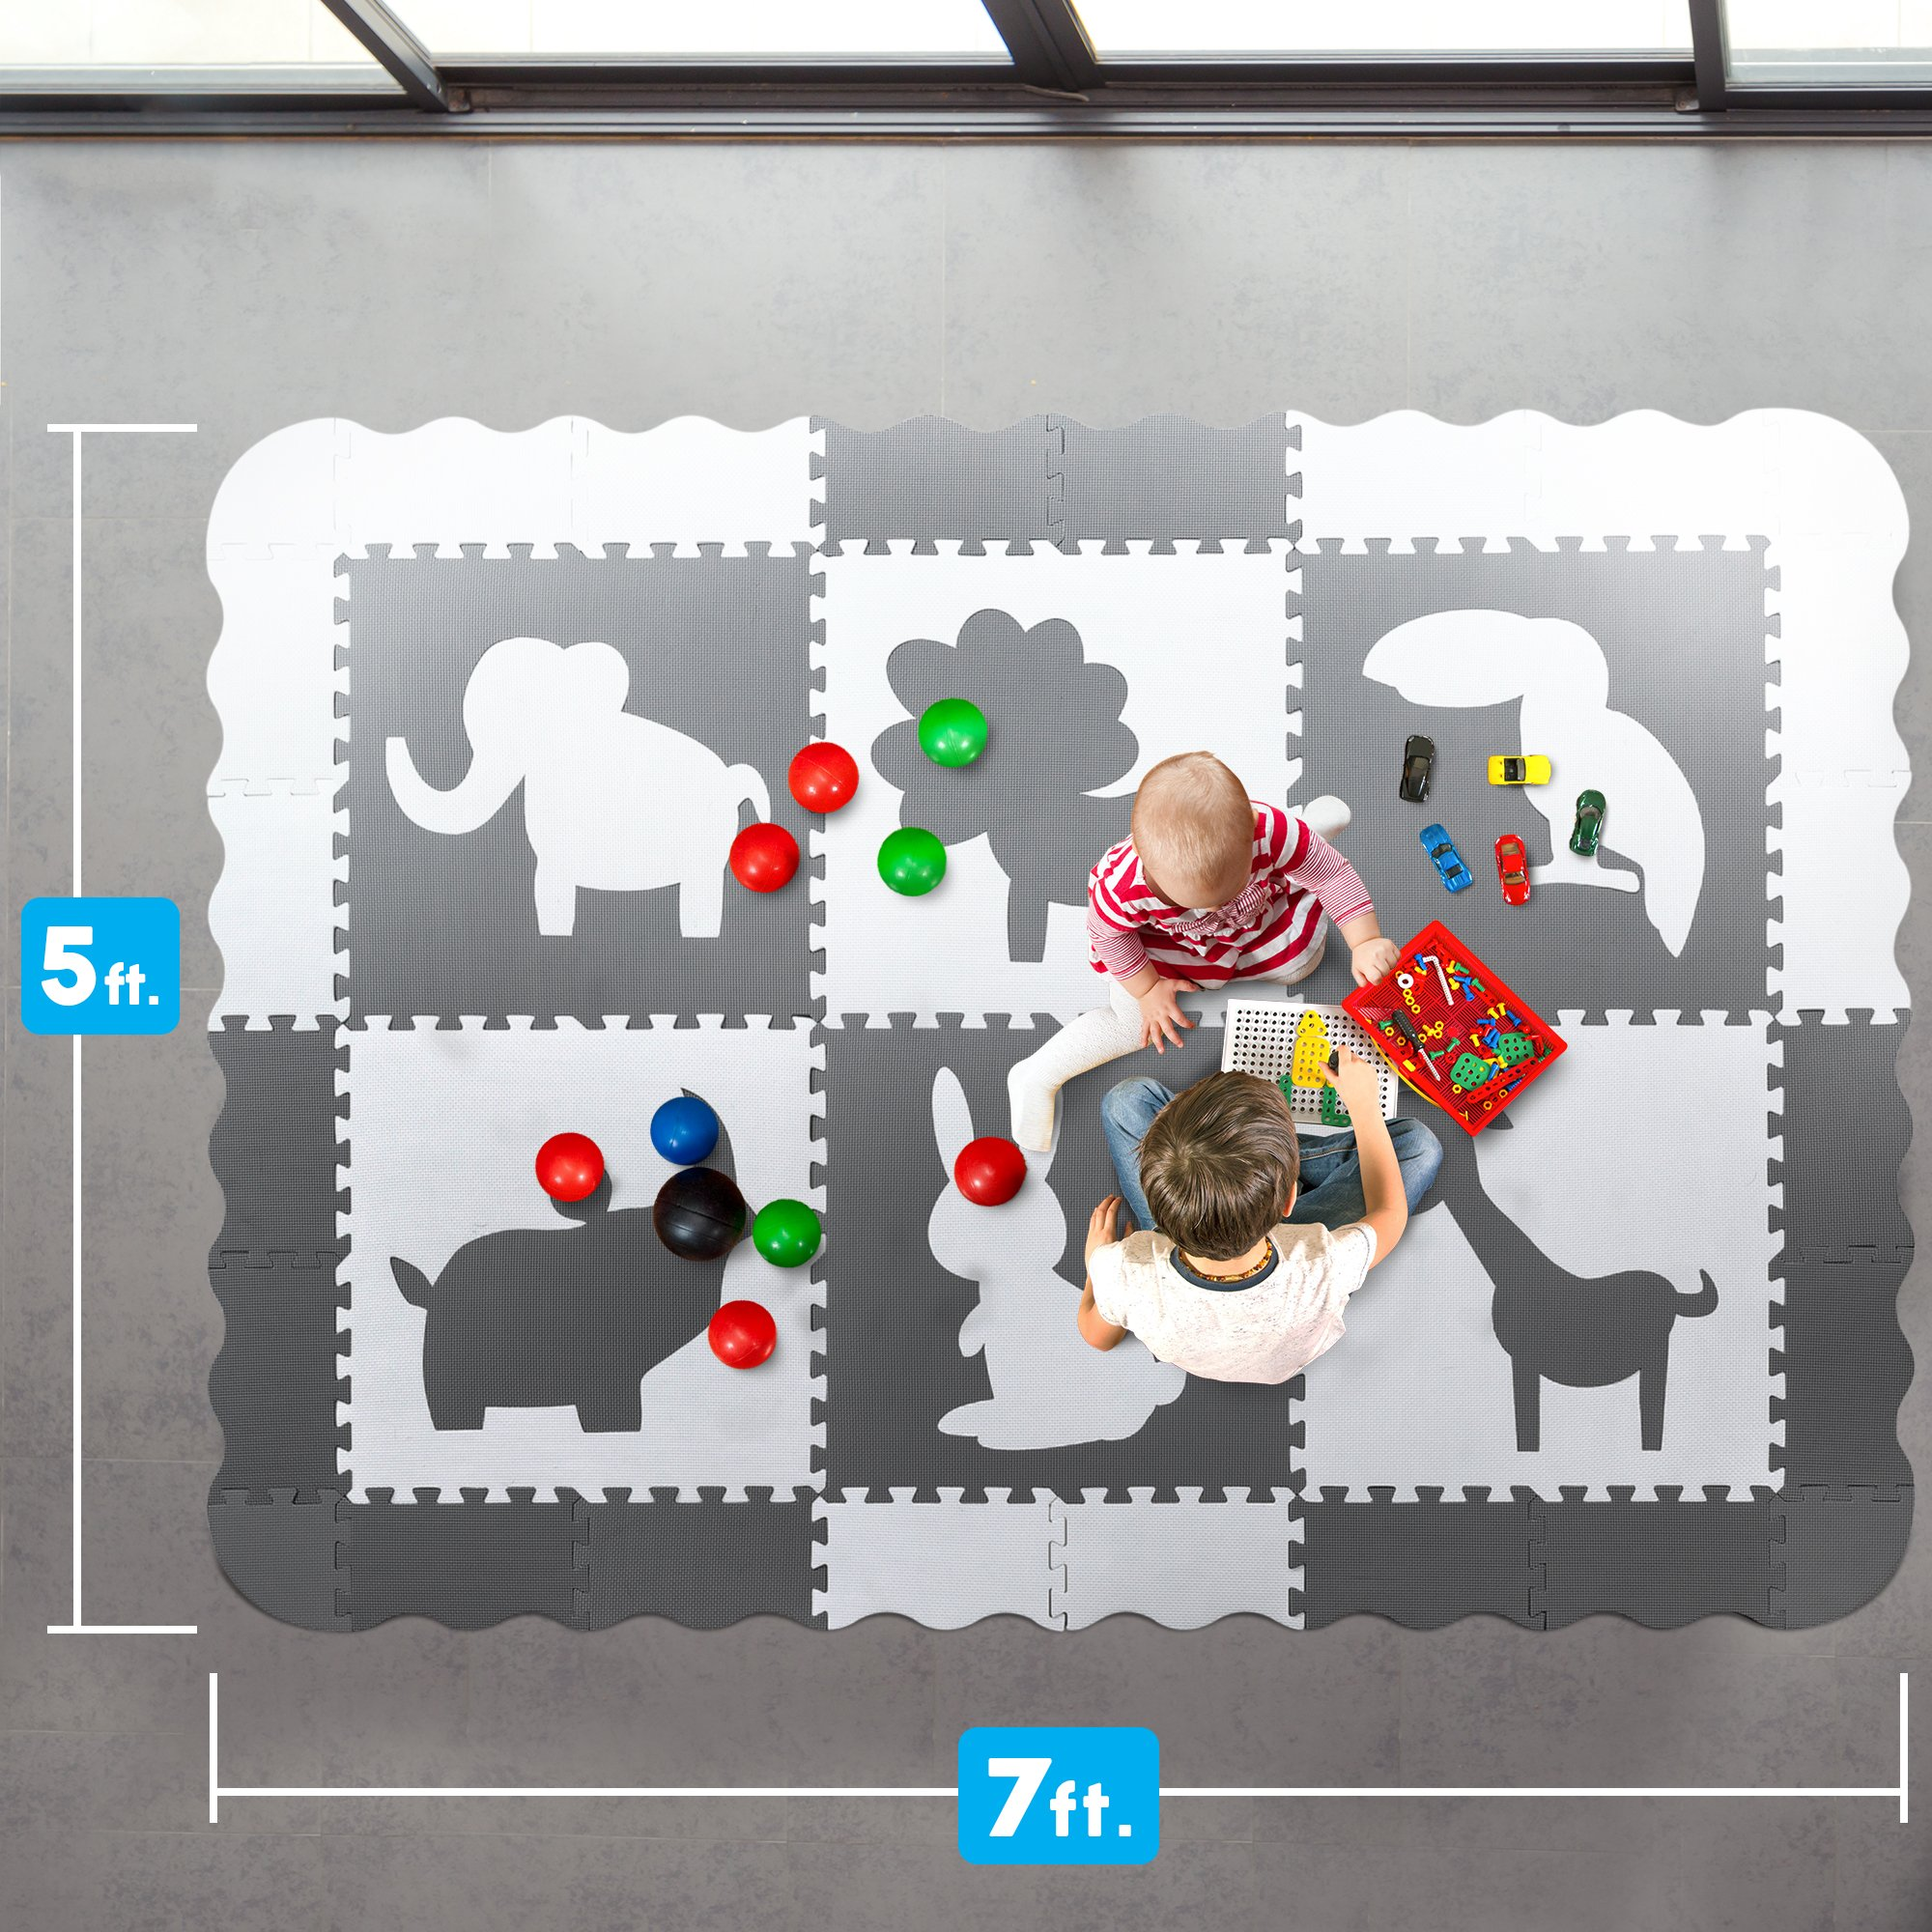 Large (5x7') Baby Play Mat with Interlocking Foam Floor Tiles. Neutral, Non Toxic Baby Playmat for Nursery, Playroom or Living Room (Grey and White) by Wee Giggles (Image #6)